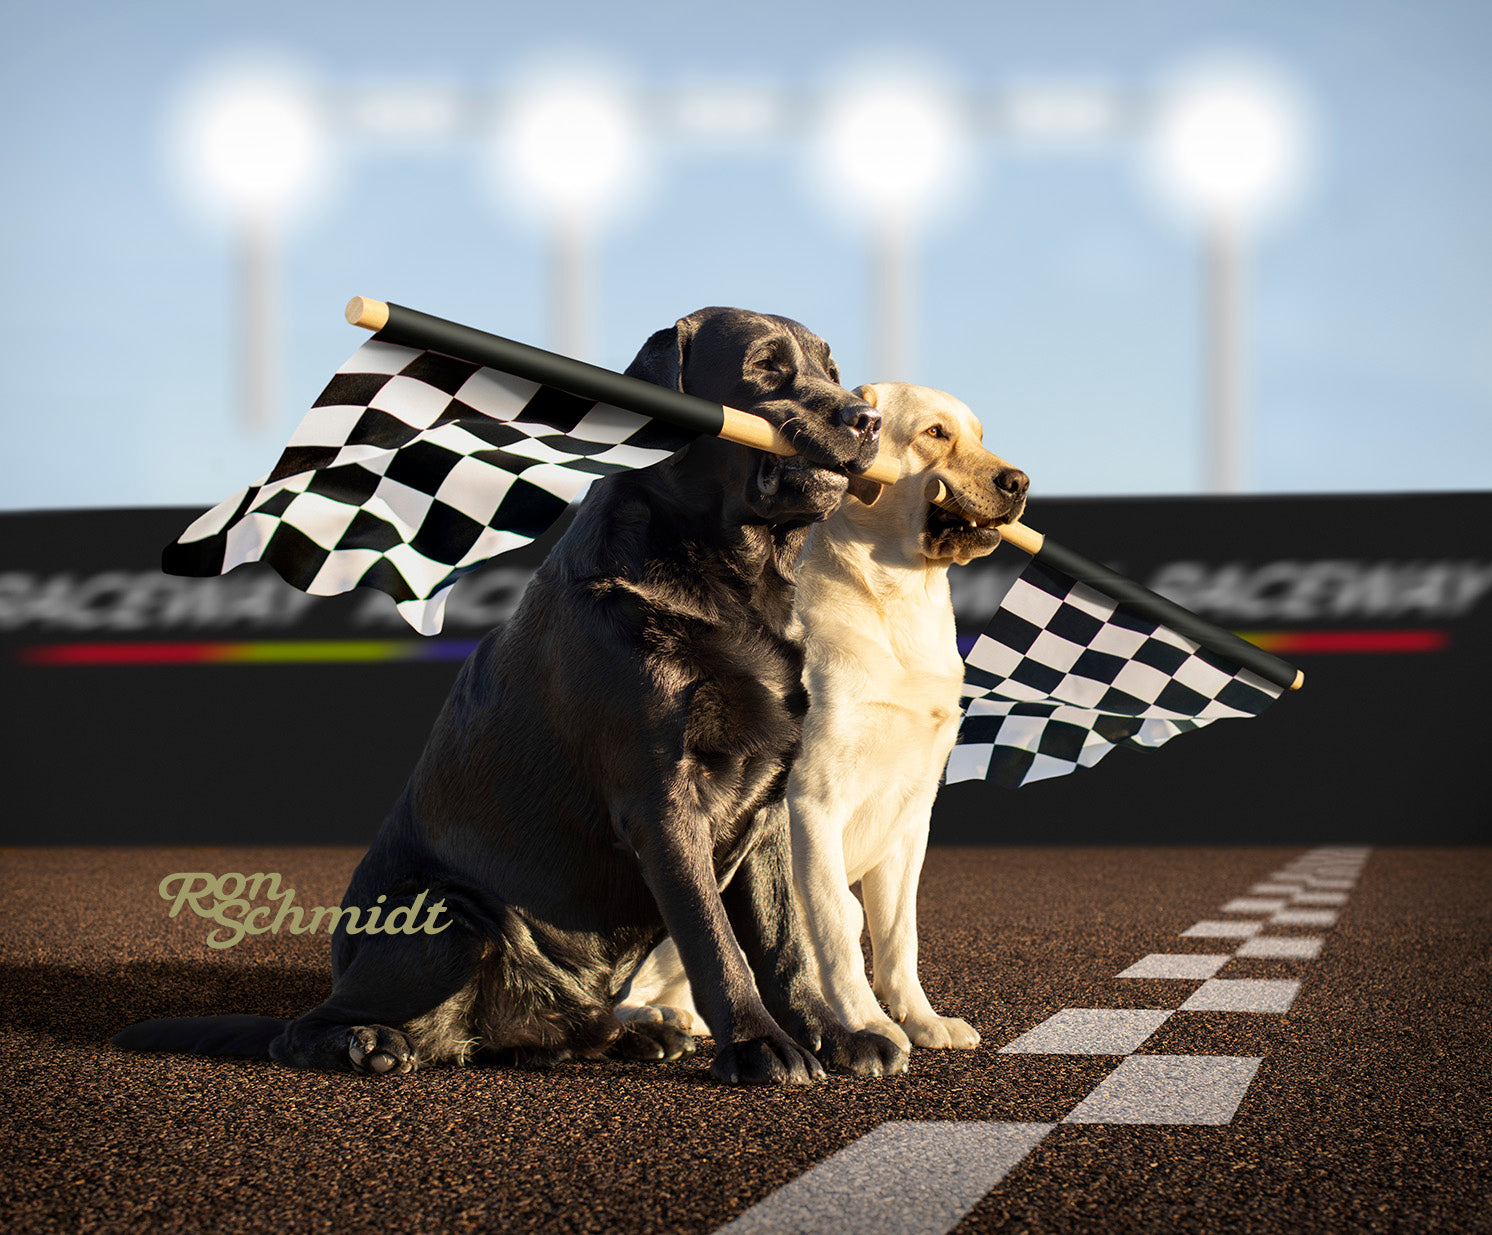 Yellow Labrador Retriever and Black Labrador Retriever holding checkered flag on race track. Art print for Dog  lovers by dog photographer Ron Schmidt